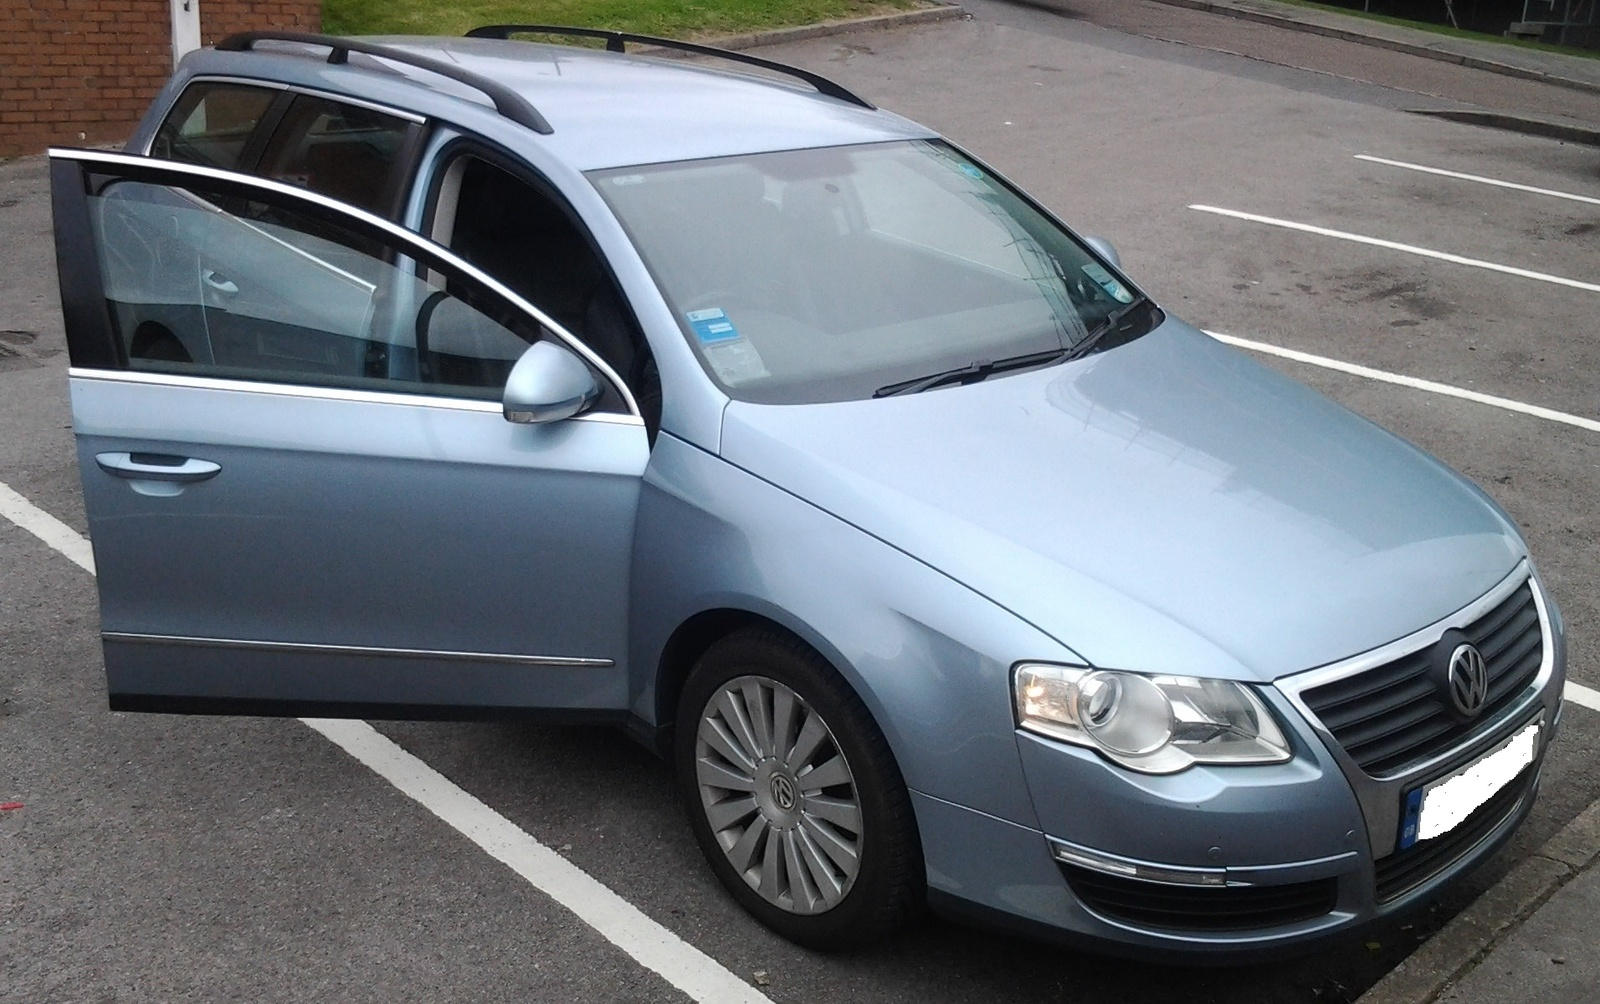 Volkswagen Passat Questions - How many filters does a 2009 Passat wagon 2.0  TDI have - CarGurus